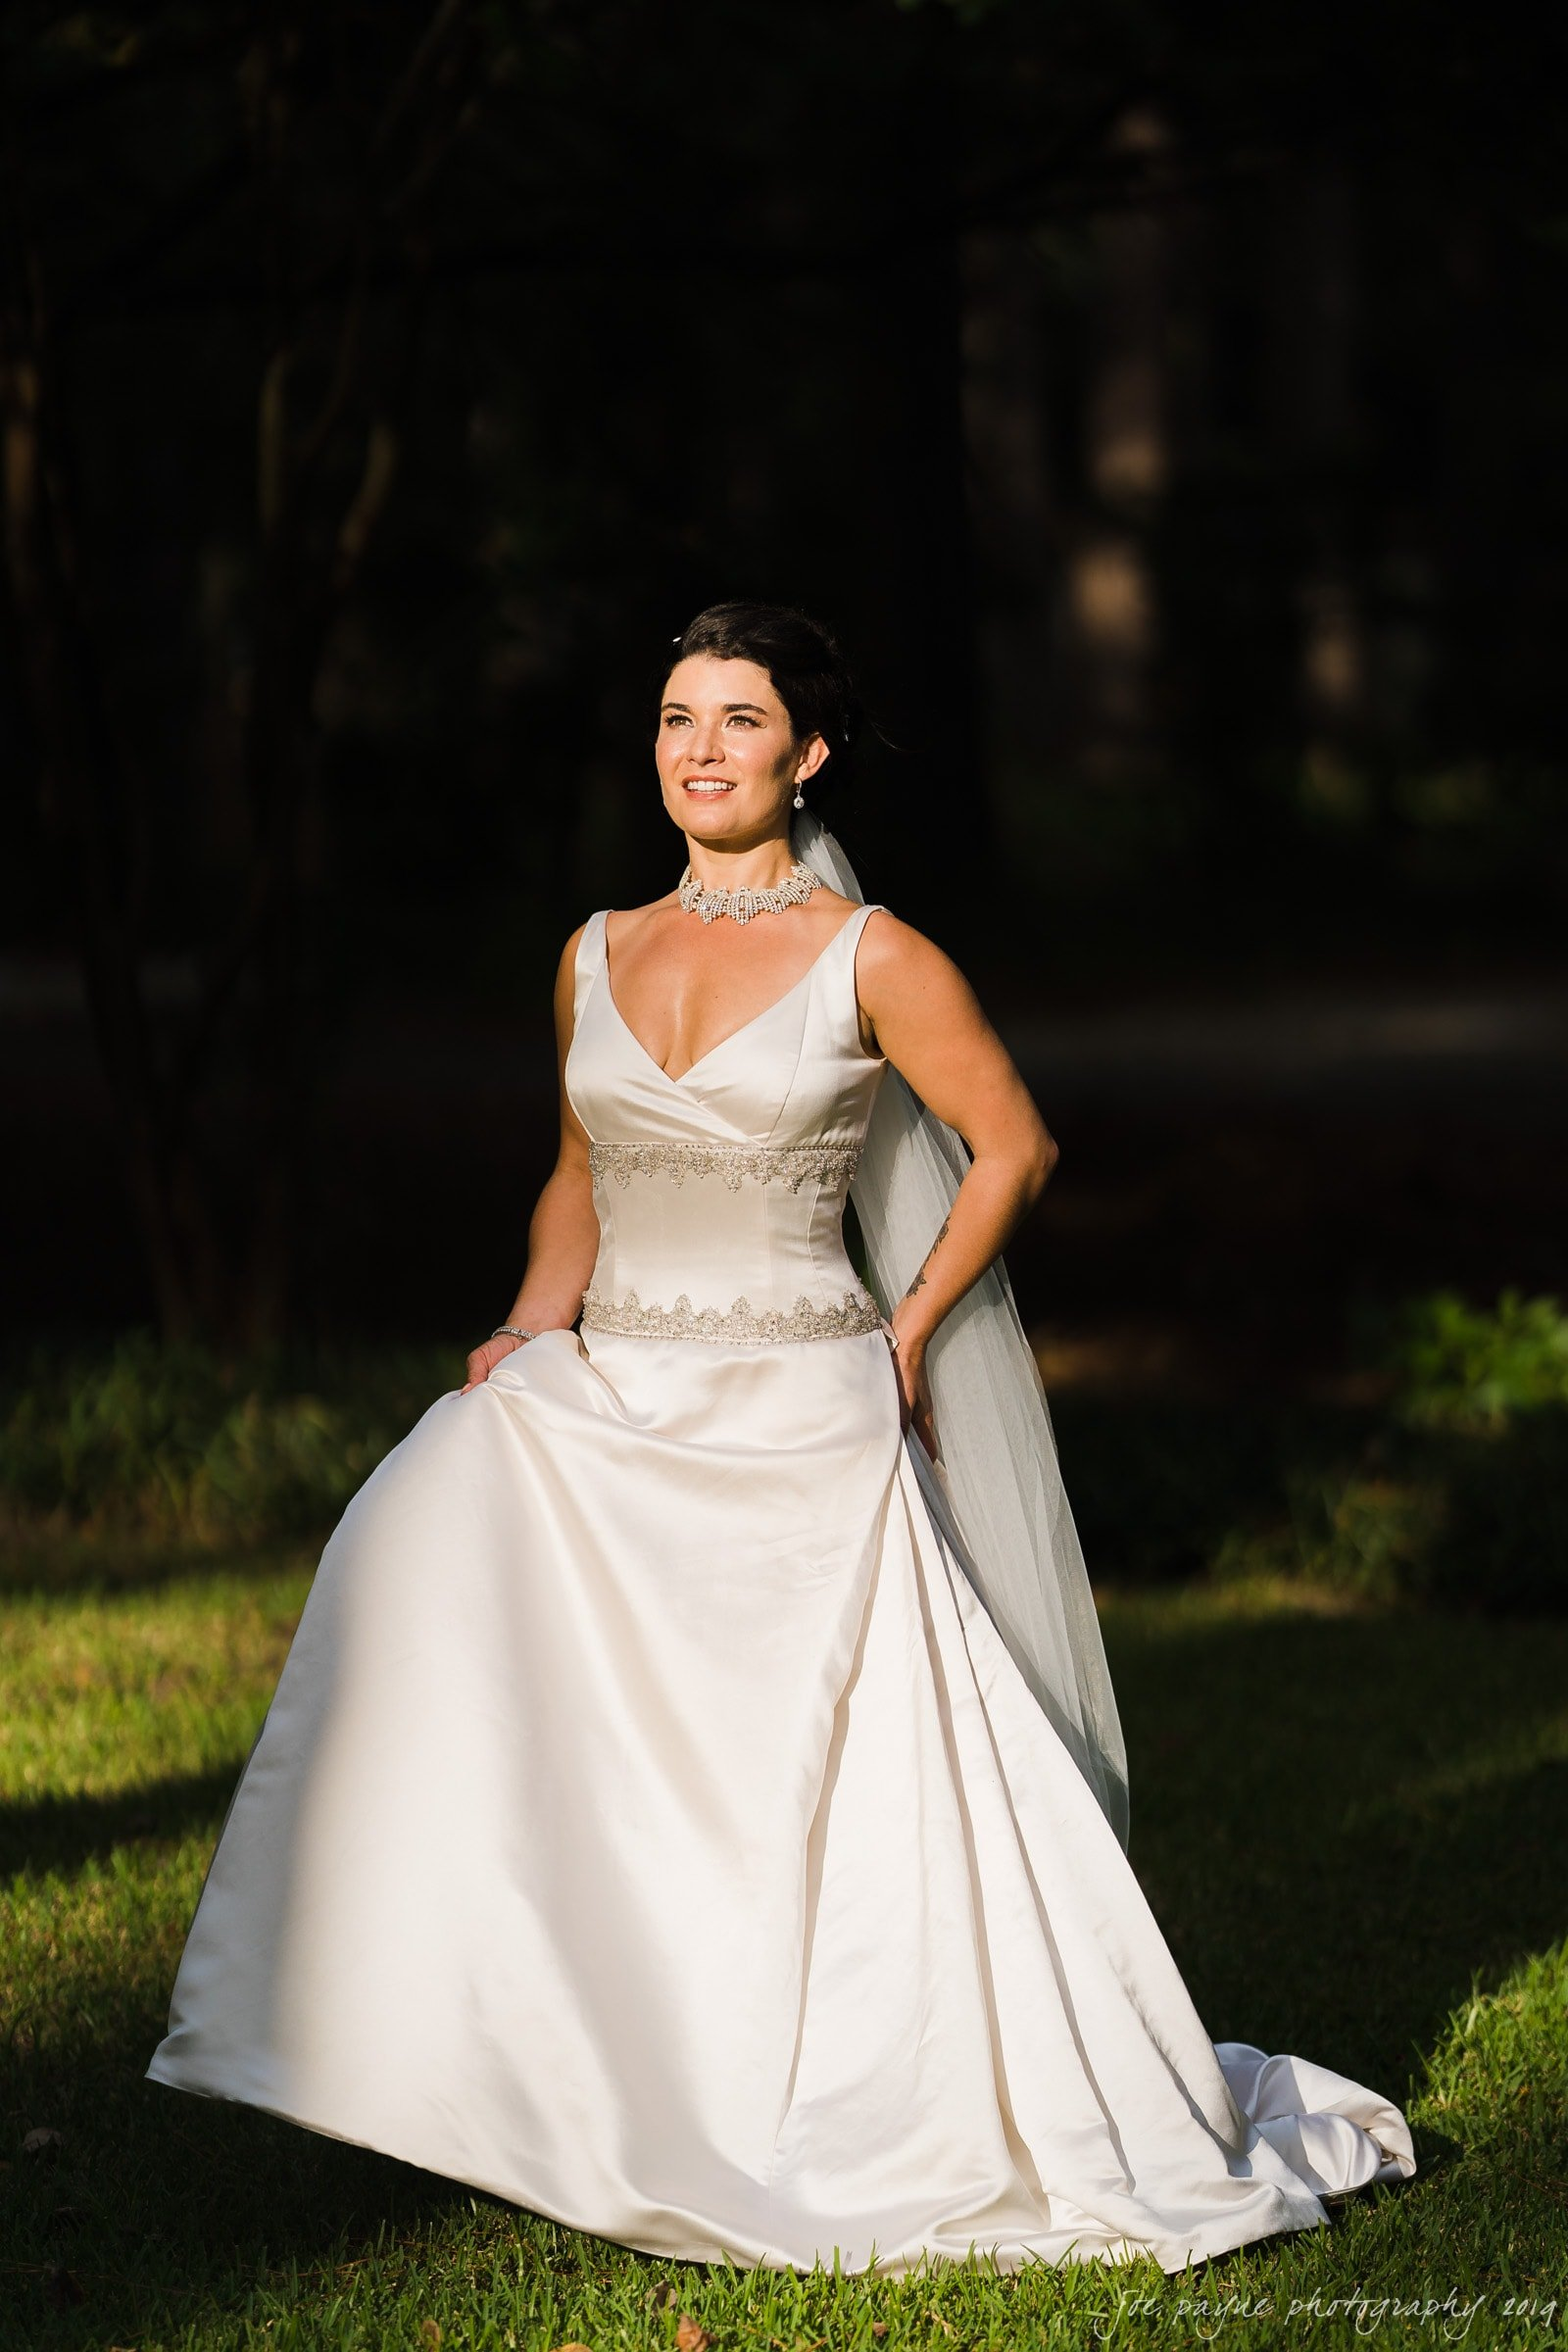 new bern wedding photography – christina's backyard bridal session